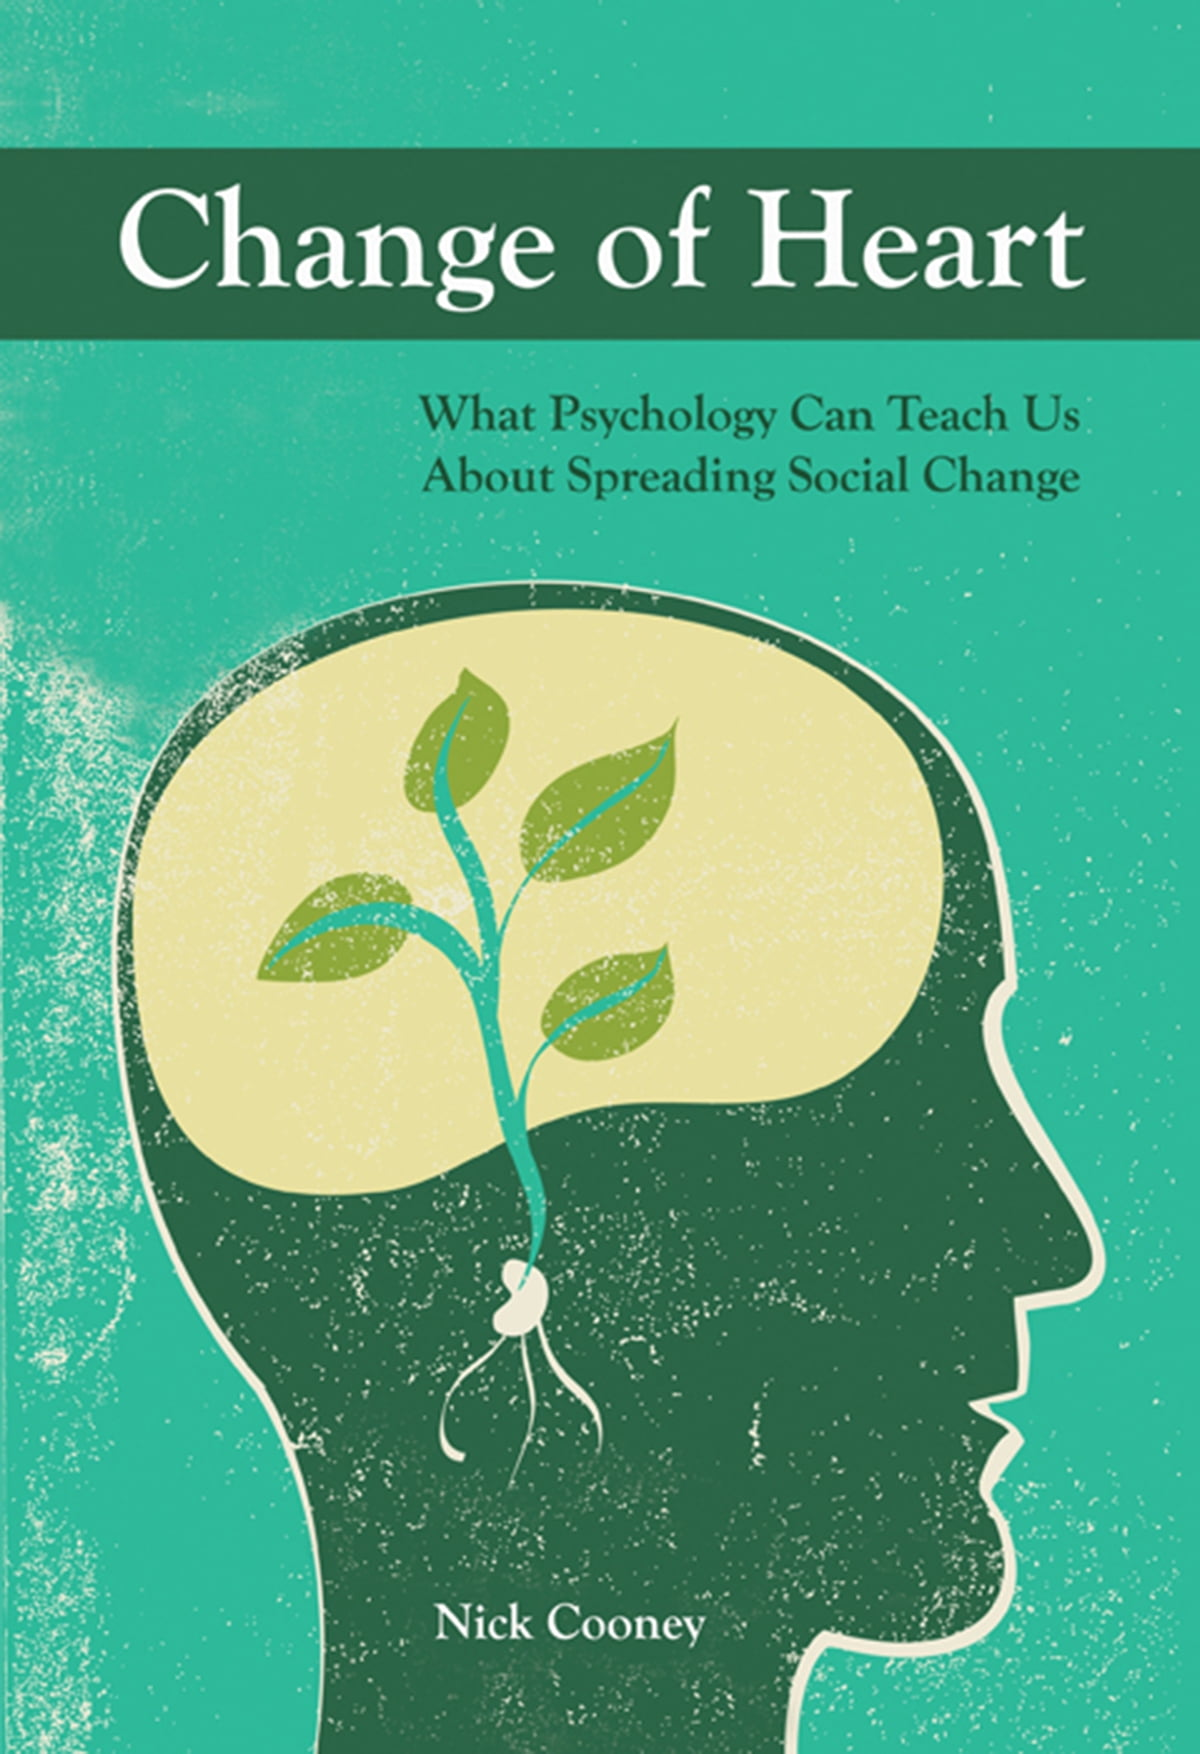 what can psychology teach us about human What is psychology psychology is the study of people's behavior, performance, and mental operations it also refers to the application of the knowledge, which can be used to understand events, treat mental health issues, and improve education, employment, and relationships.